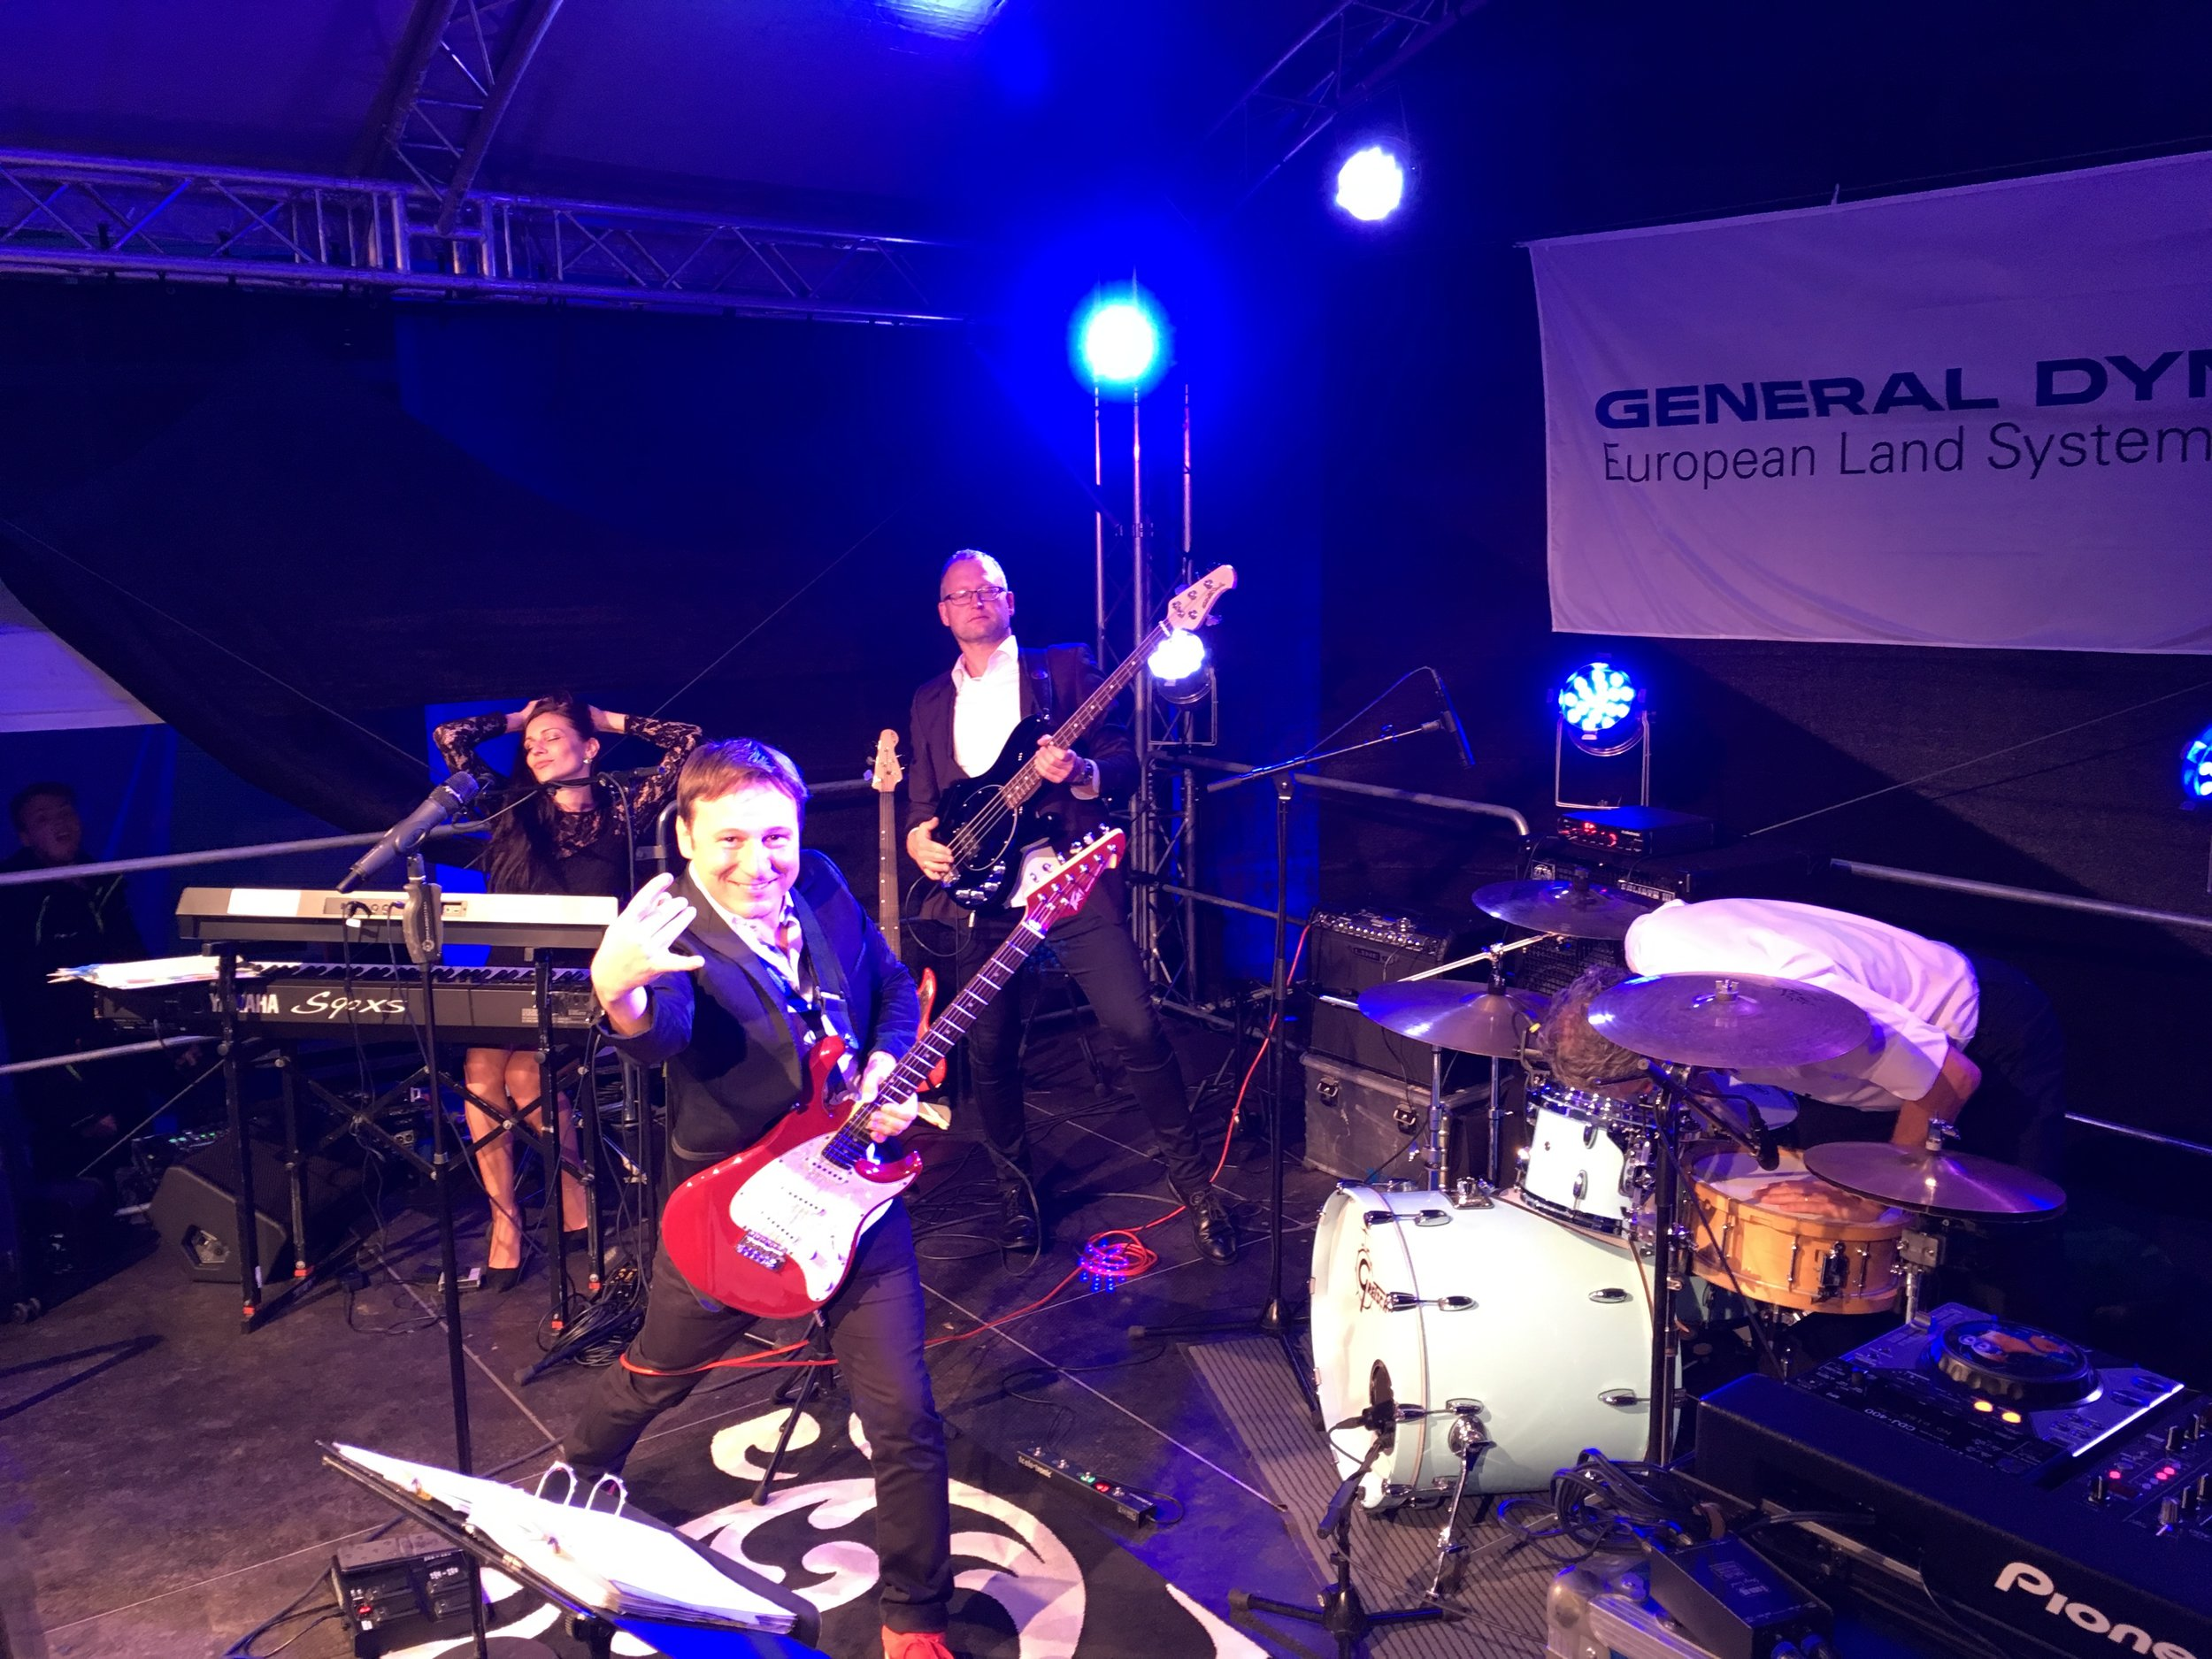 Sommerfest von General Dynamics - 19.08.2017